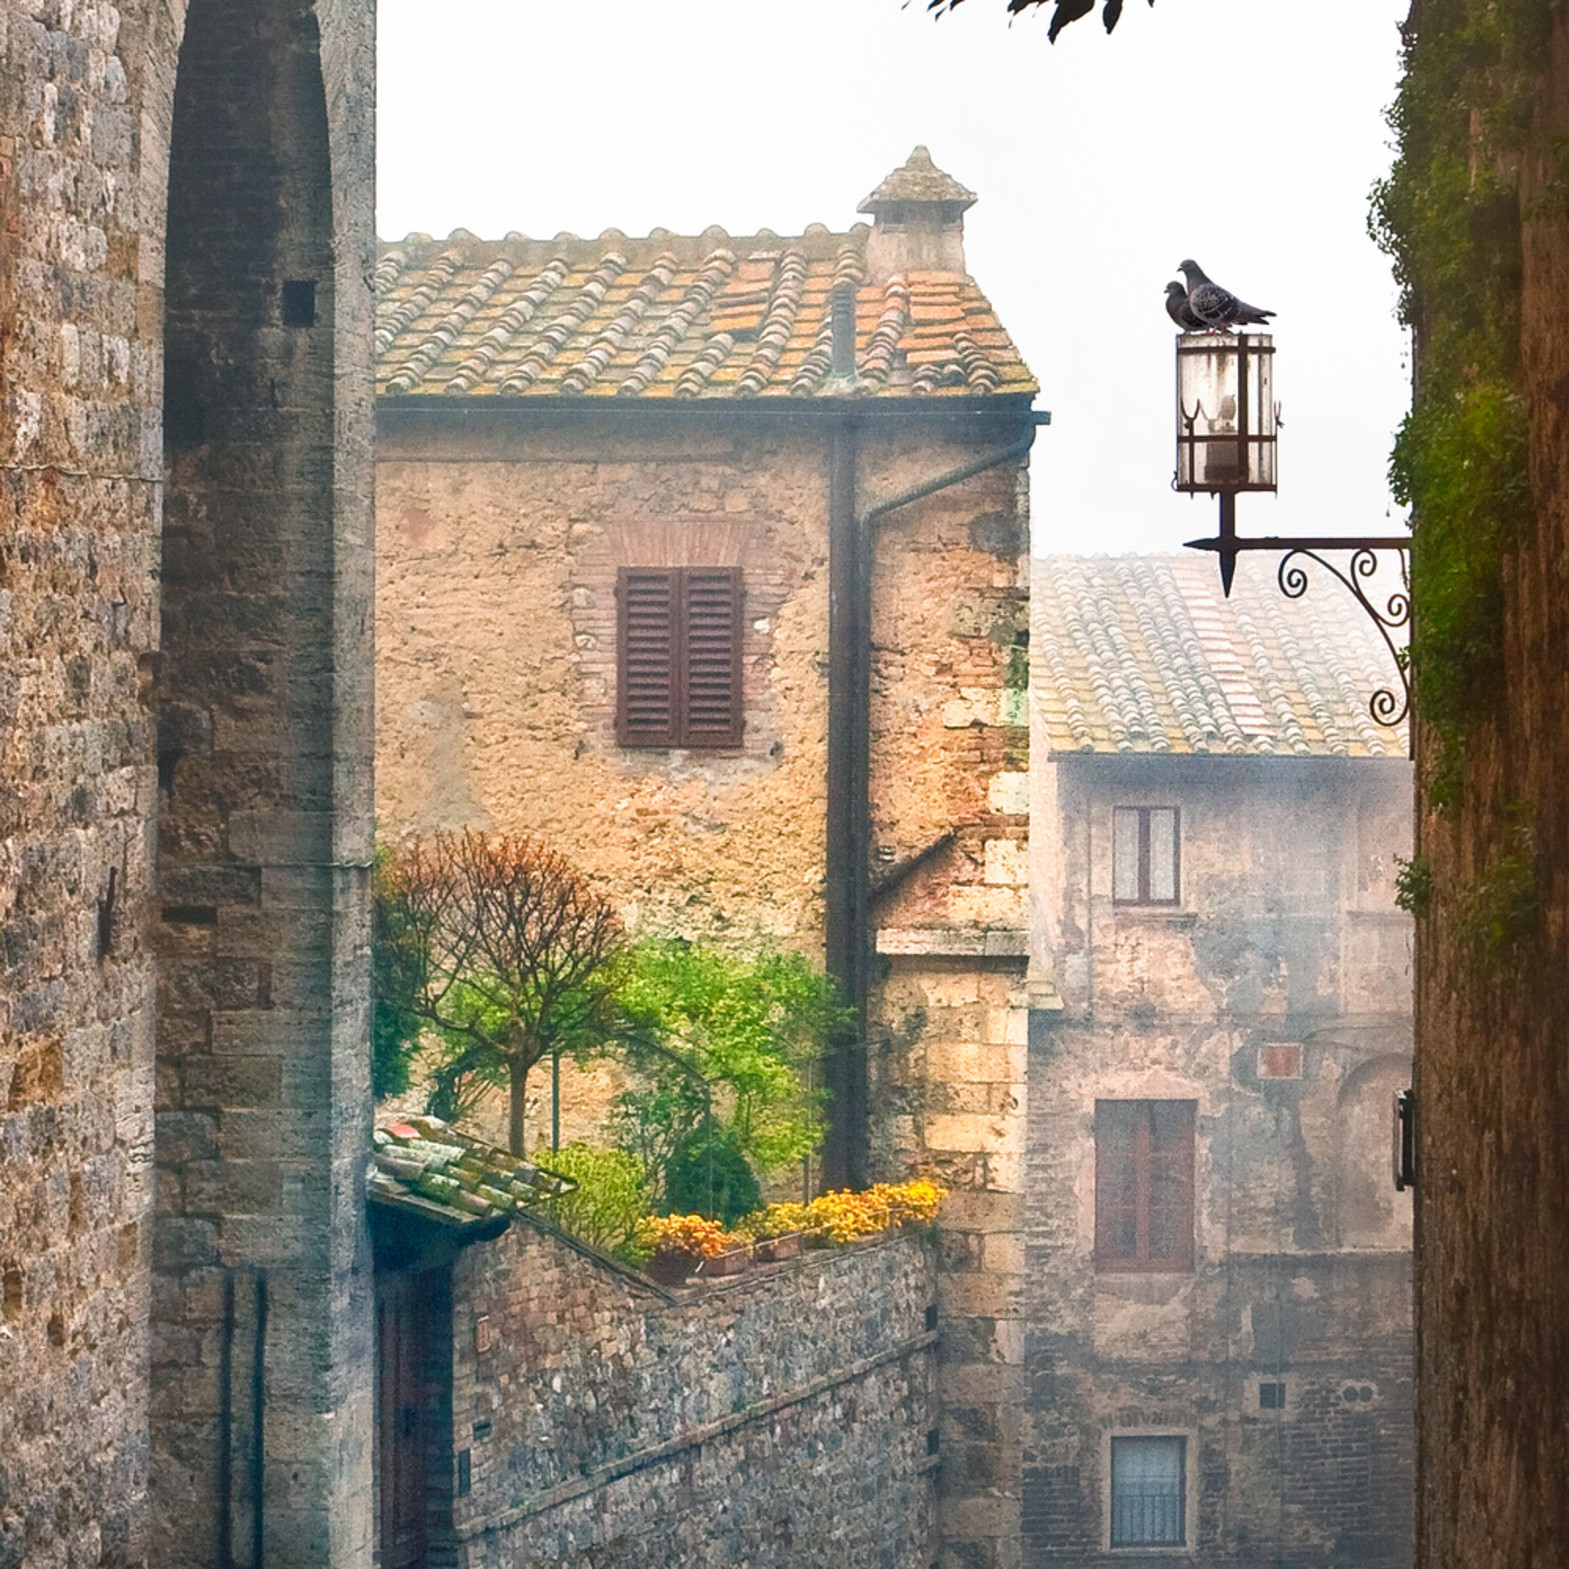 Quiet streets of san gigminano pd7b3y